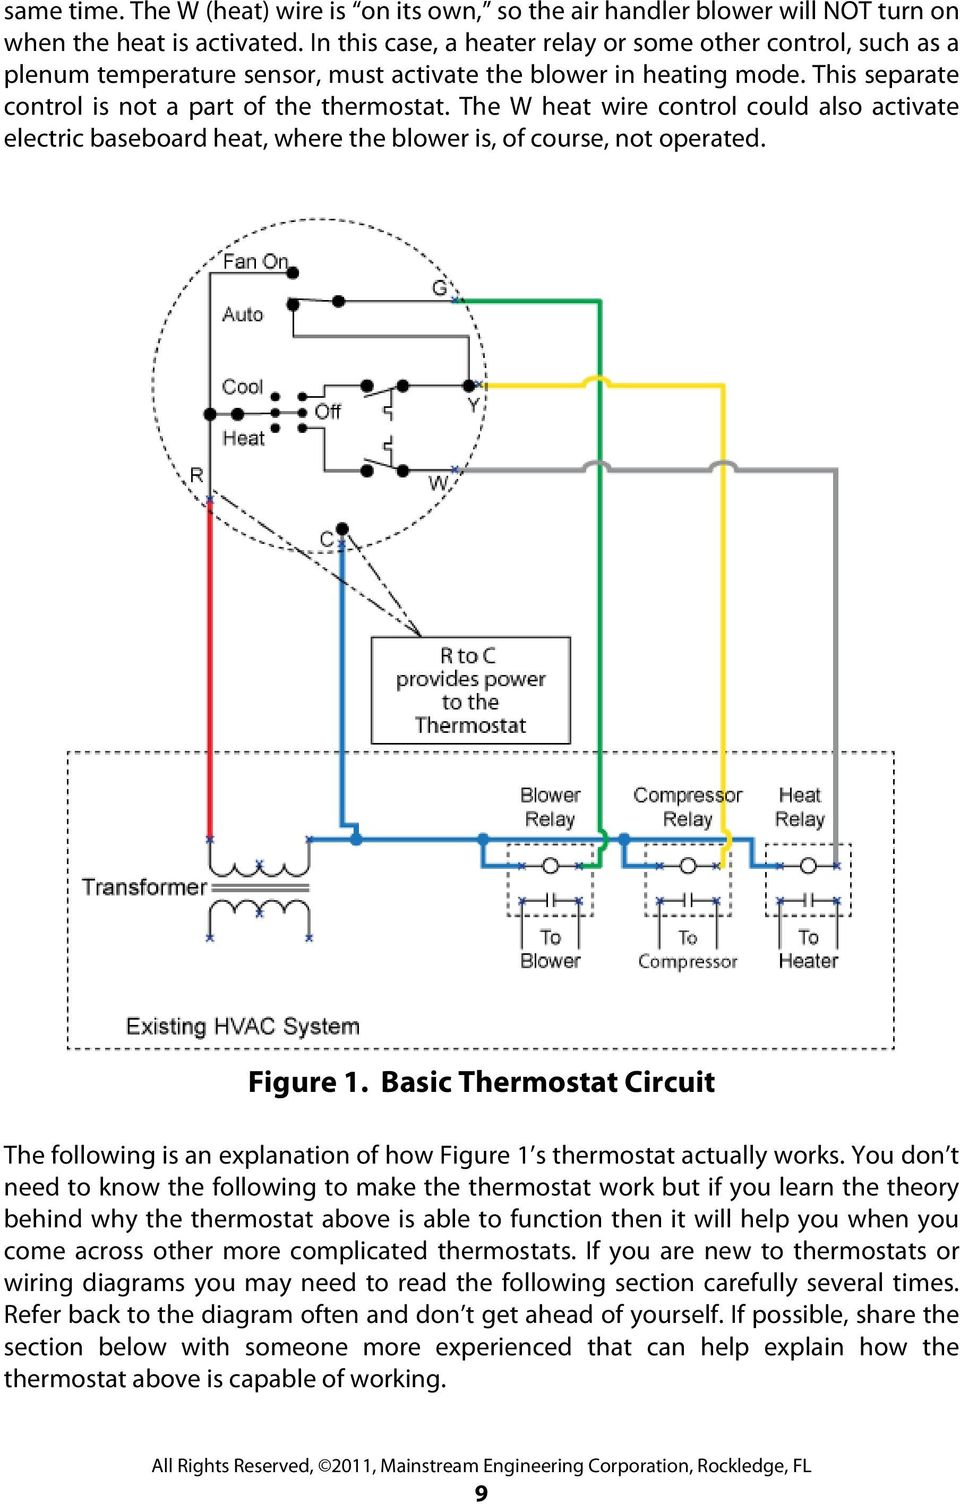 Thermostatic Wiring Principles By Bob Scaringe Phd Pe Pdf Thermostat Delay Relay Timer Circuit Electronic Projects The W Heat Wire Control Could Also Activate Electric Baseboard Where Blower Is